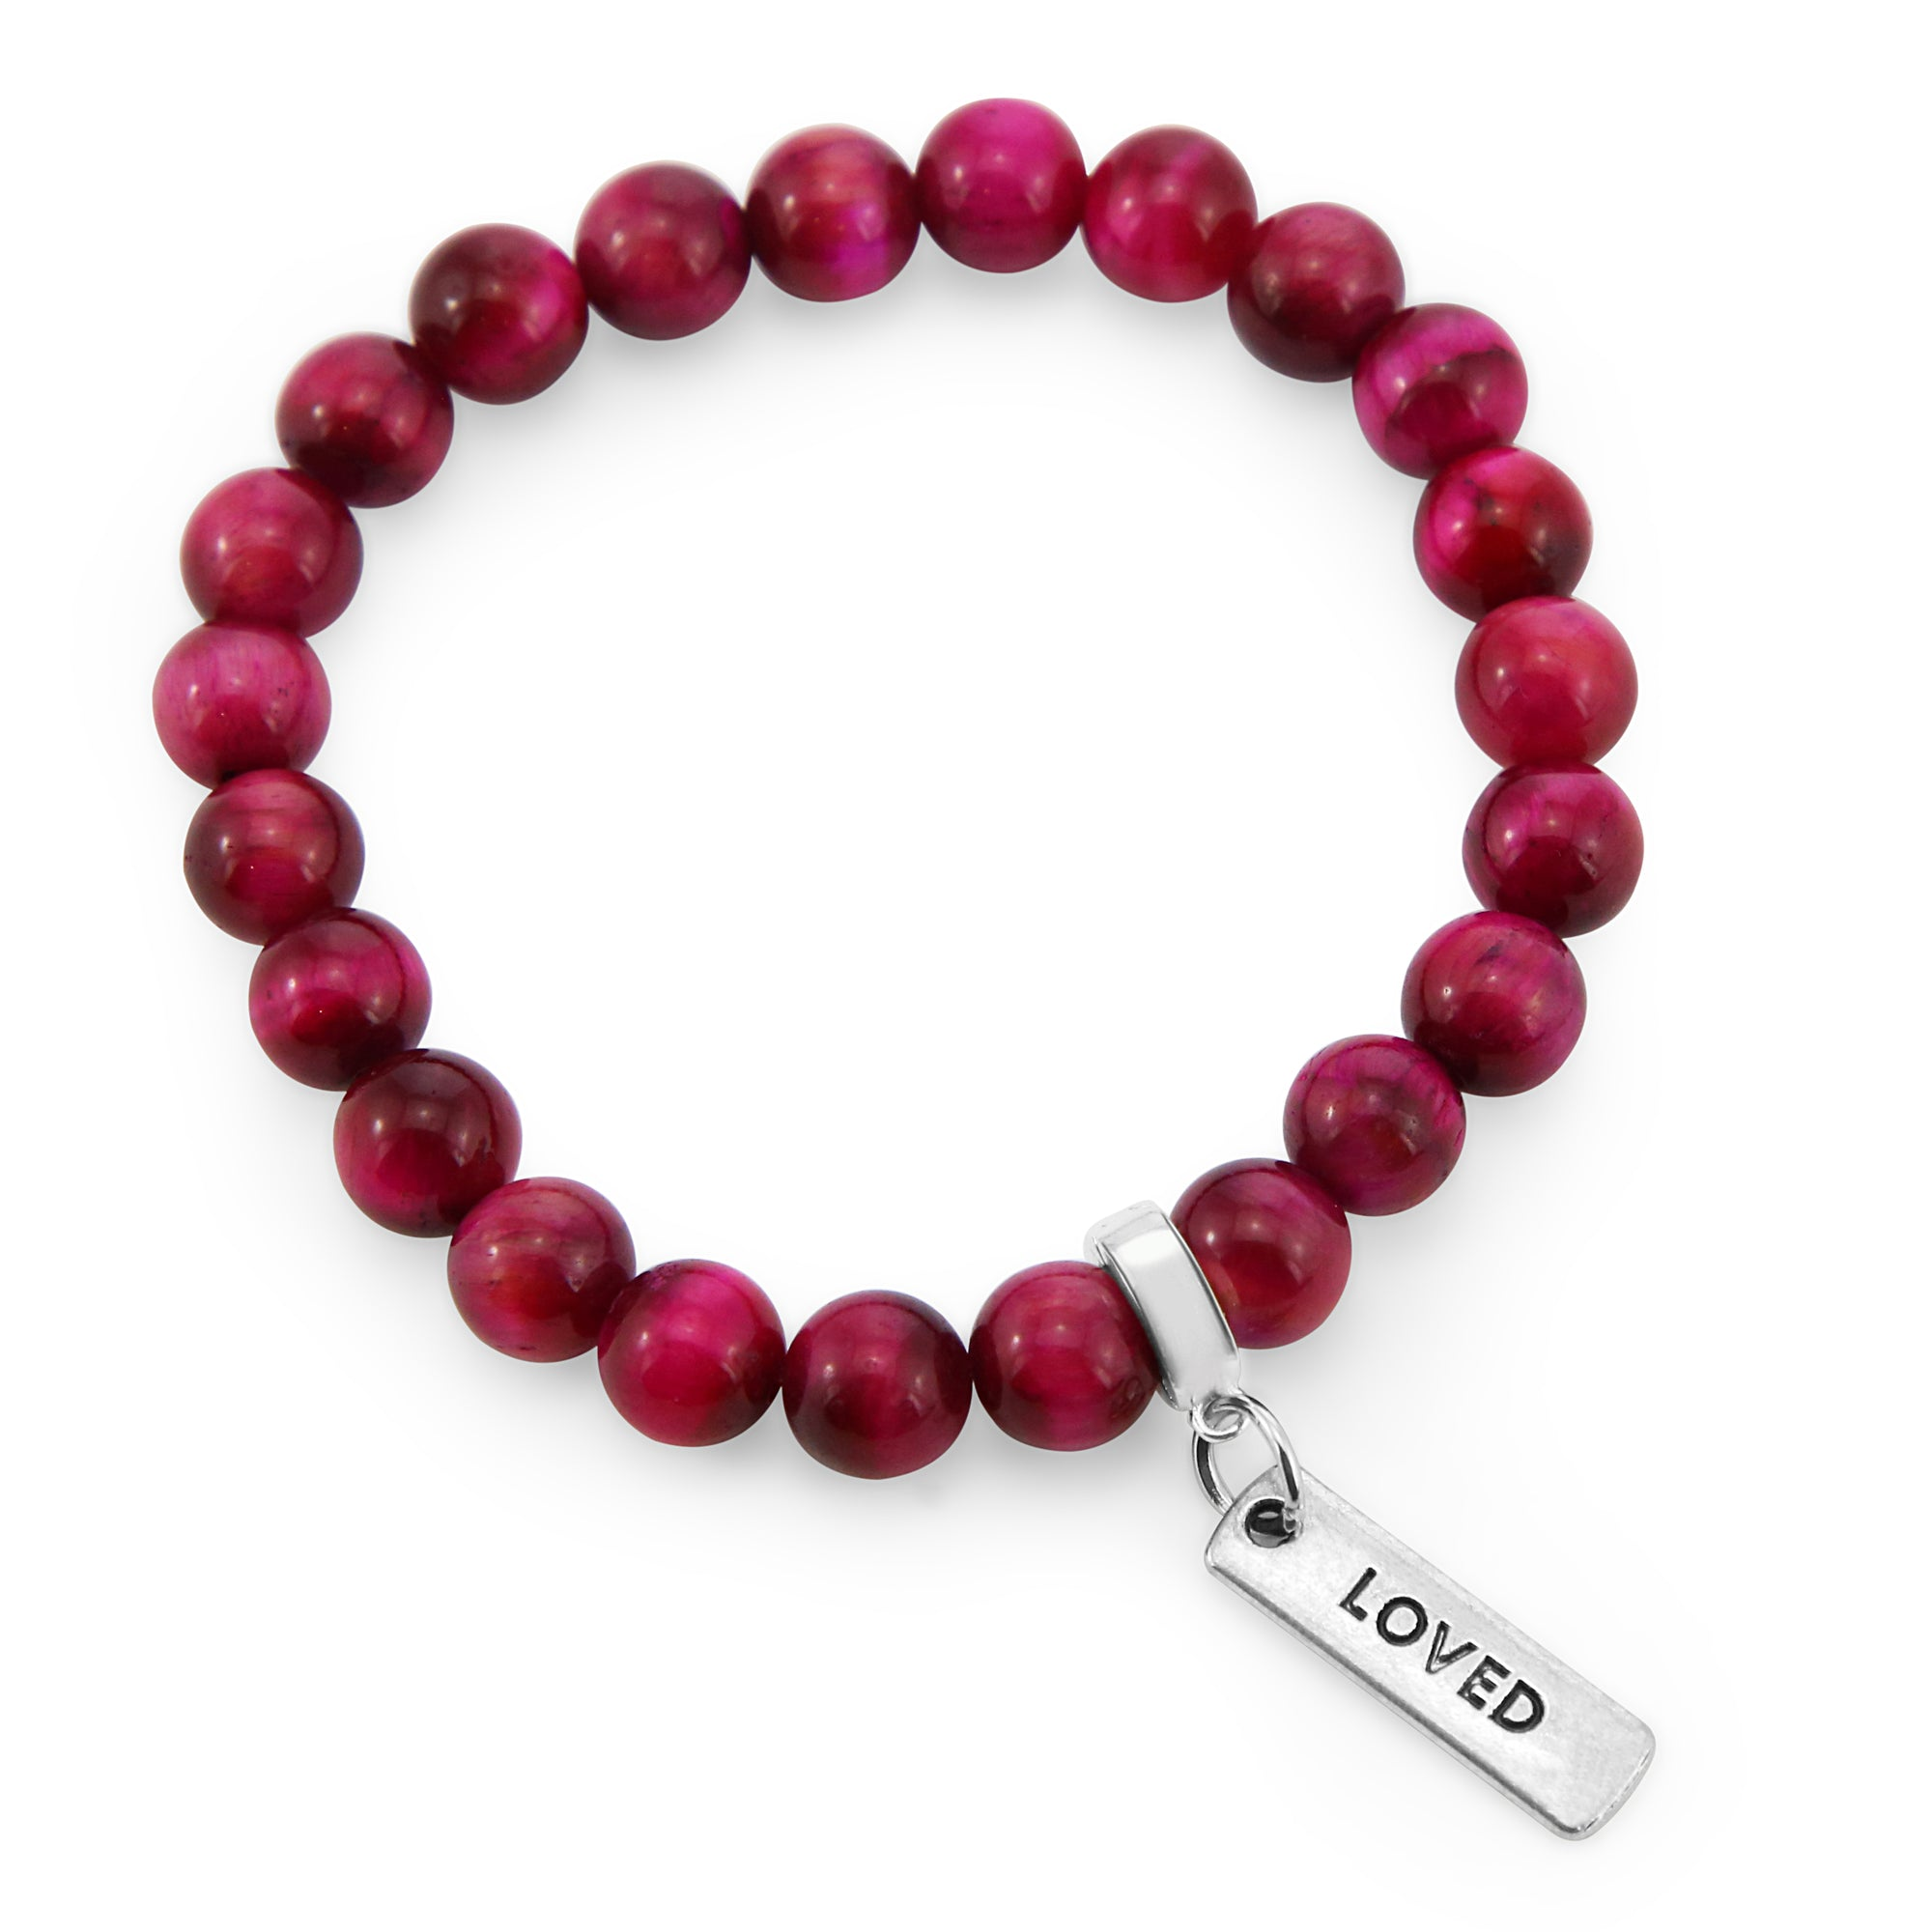 LIMITED EDITION Precious Stones - Bright Fuchsia Tigers Eye 8mm bead bracelet - with Word Charms